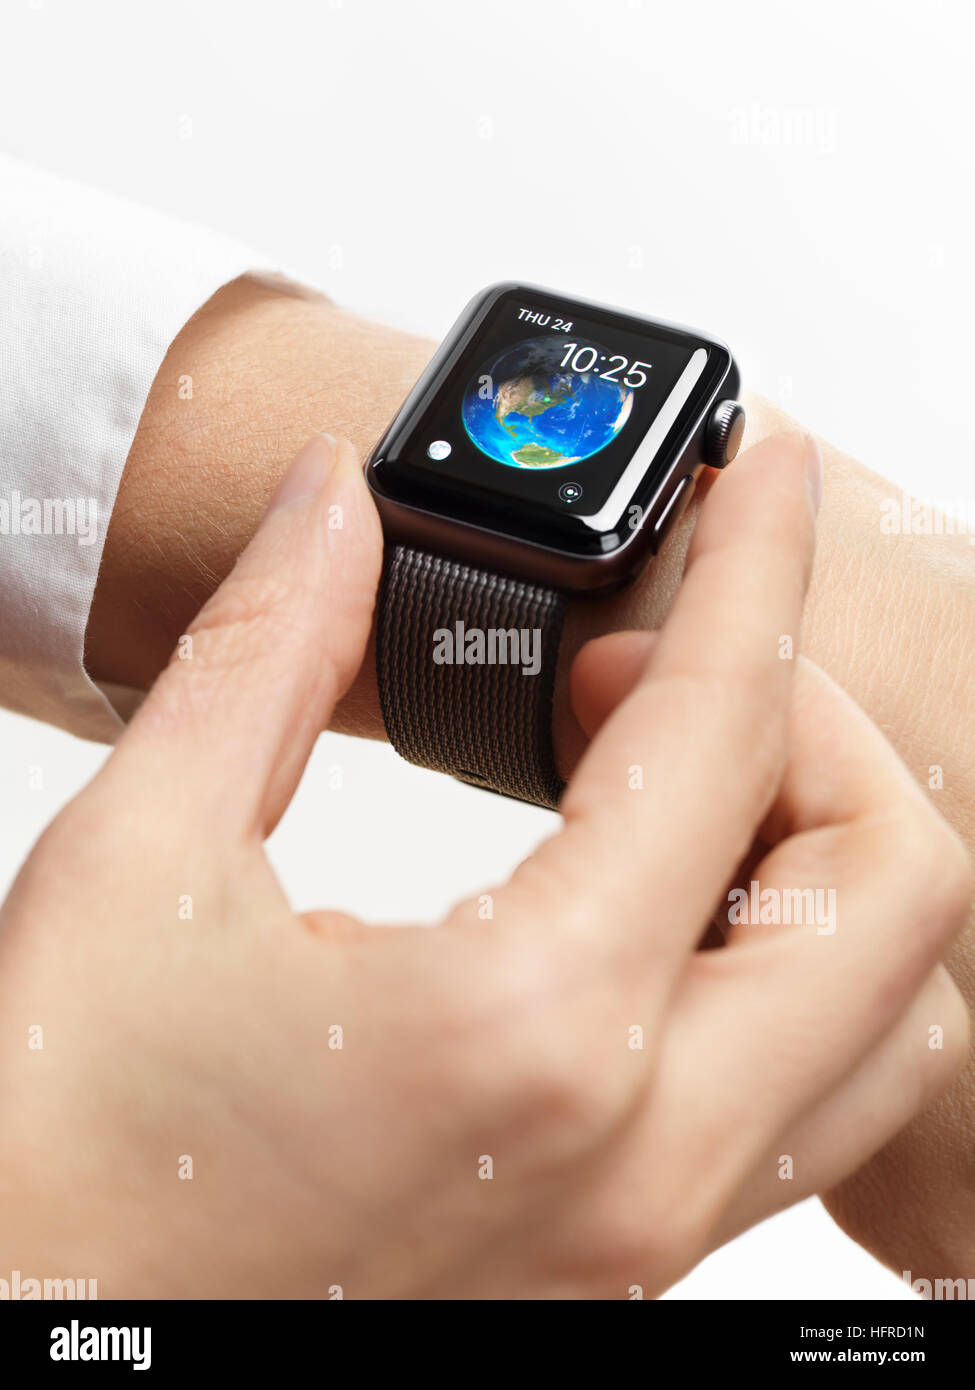 Woman hand with Apple Watch, smartwatch on her wrist - Stock Image